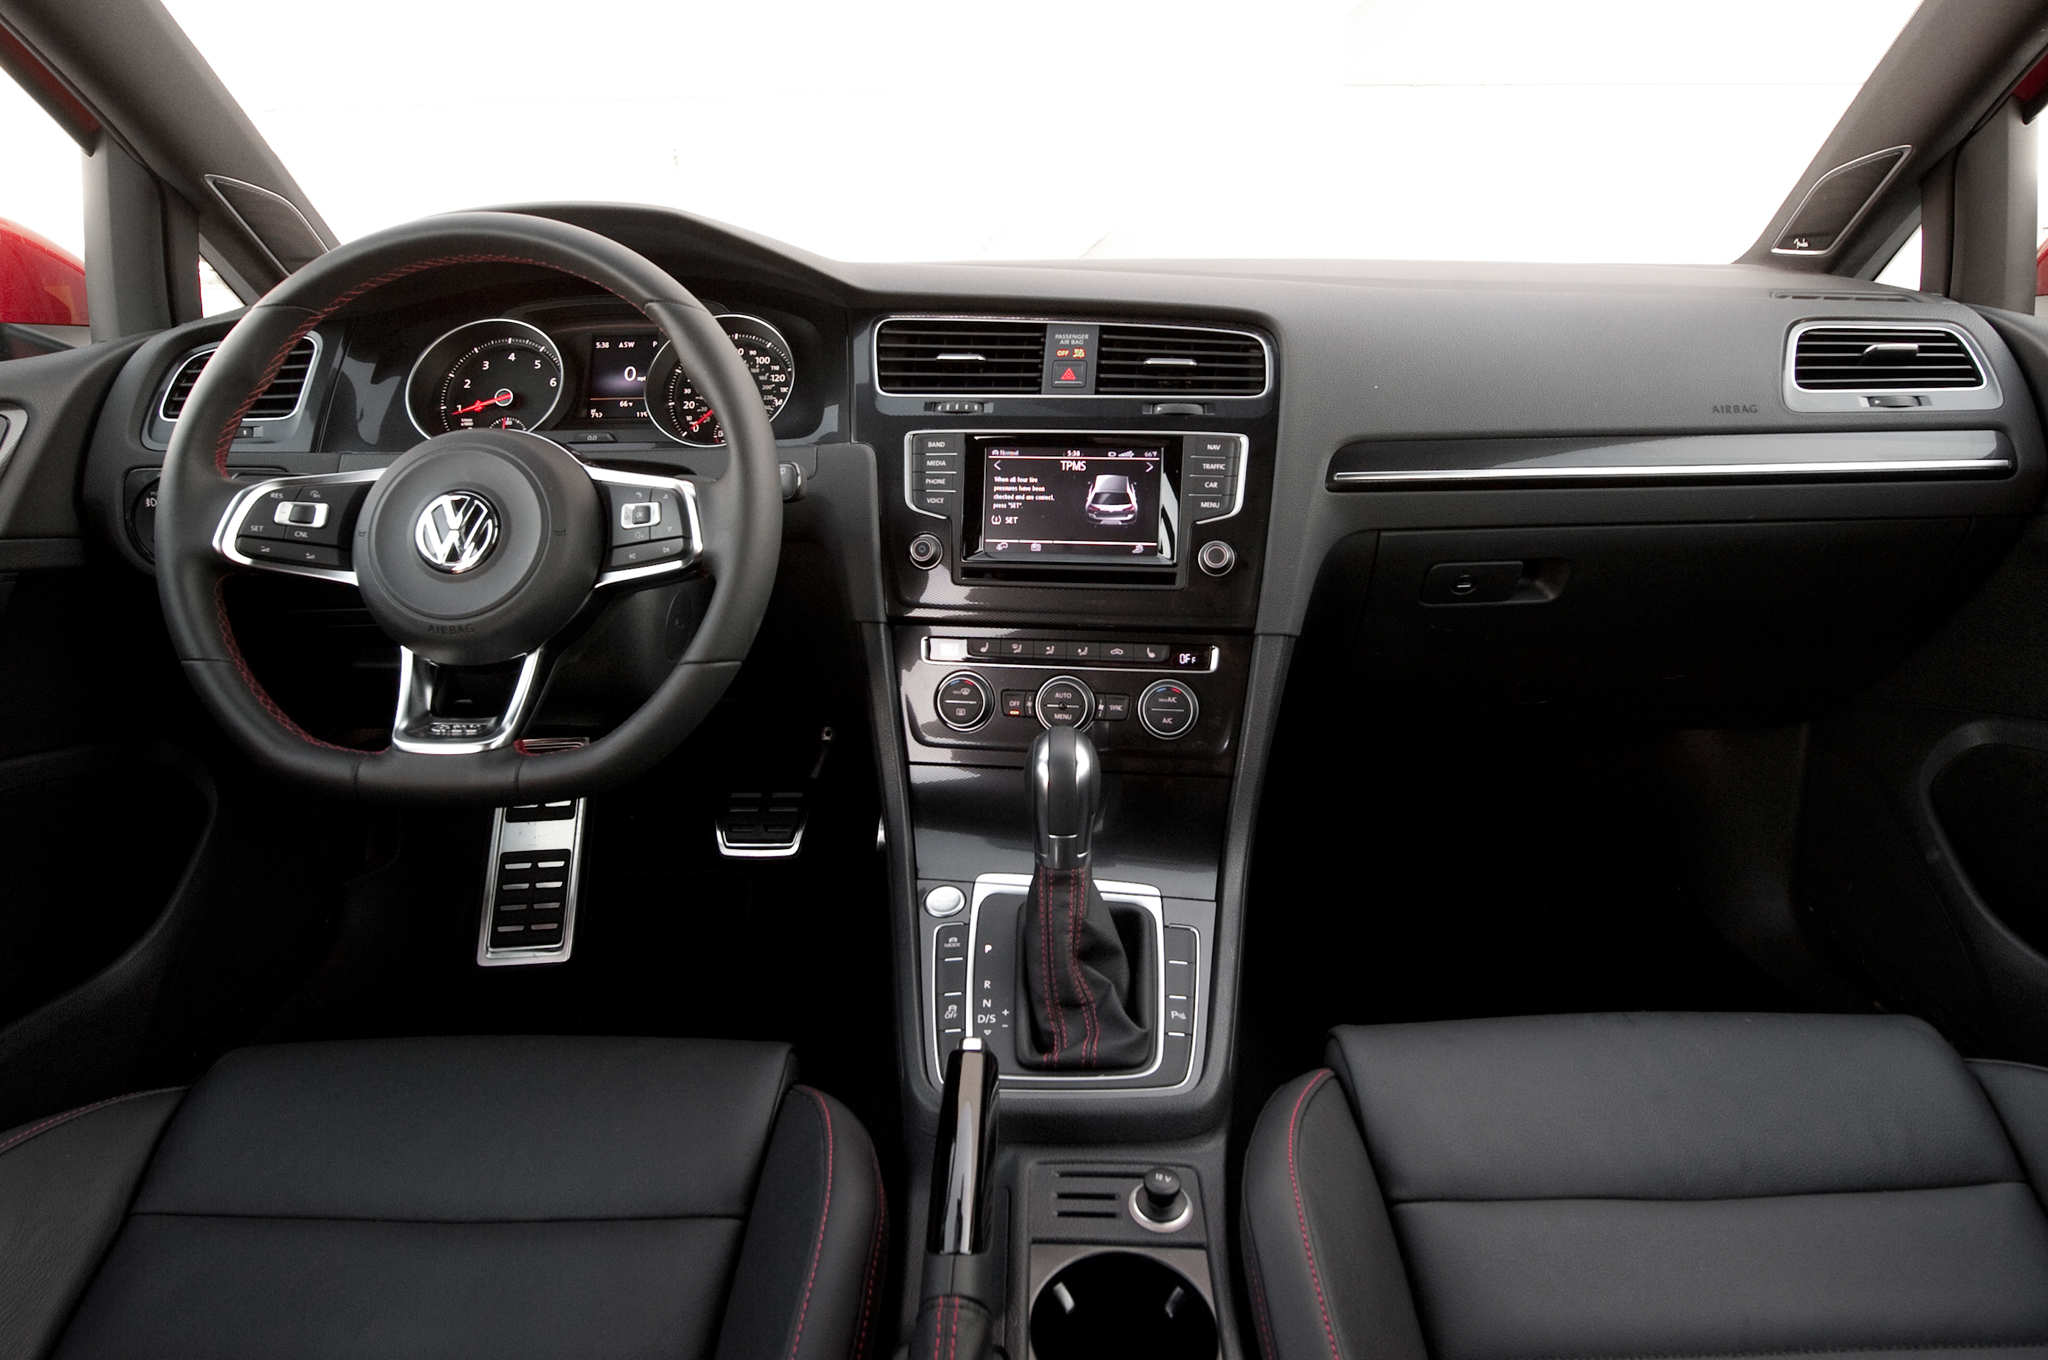 2015 Volkswagen Golf Gti Interior Dash And Panel (Photo 49 of 55)